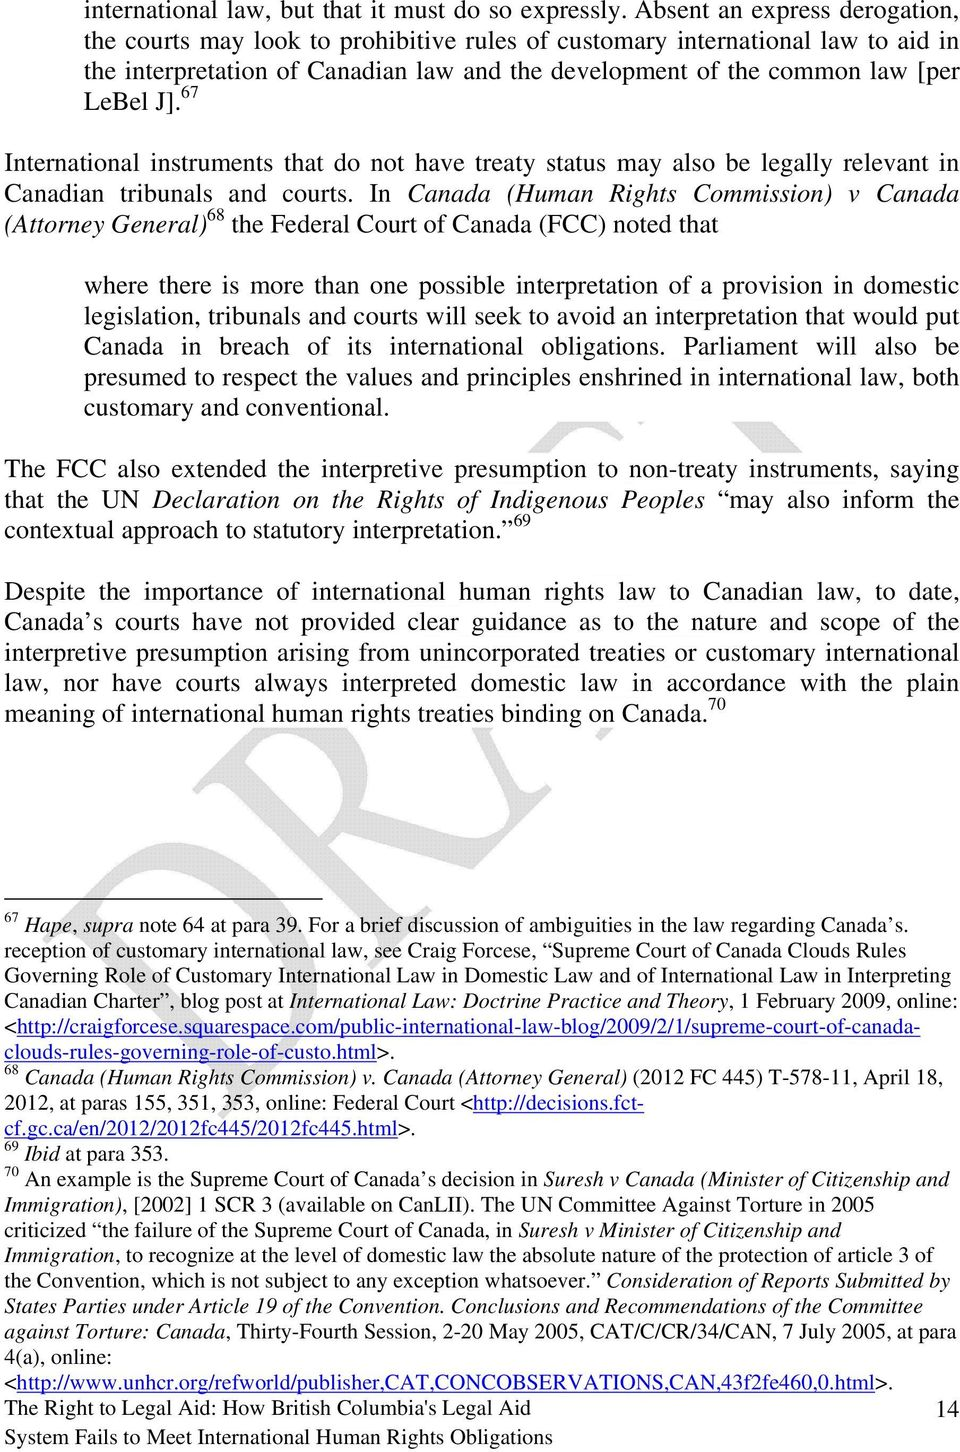 67 International instruments that do not have treaty status may also be legally relevant in Canadian tribunals and courts.